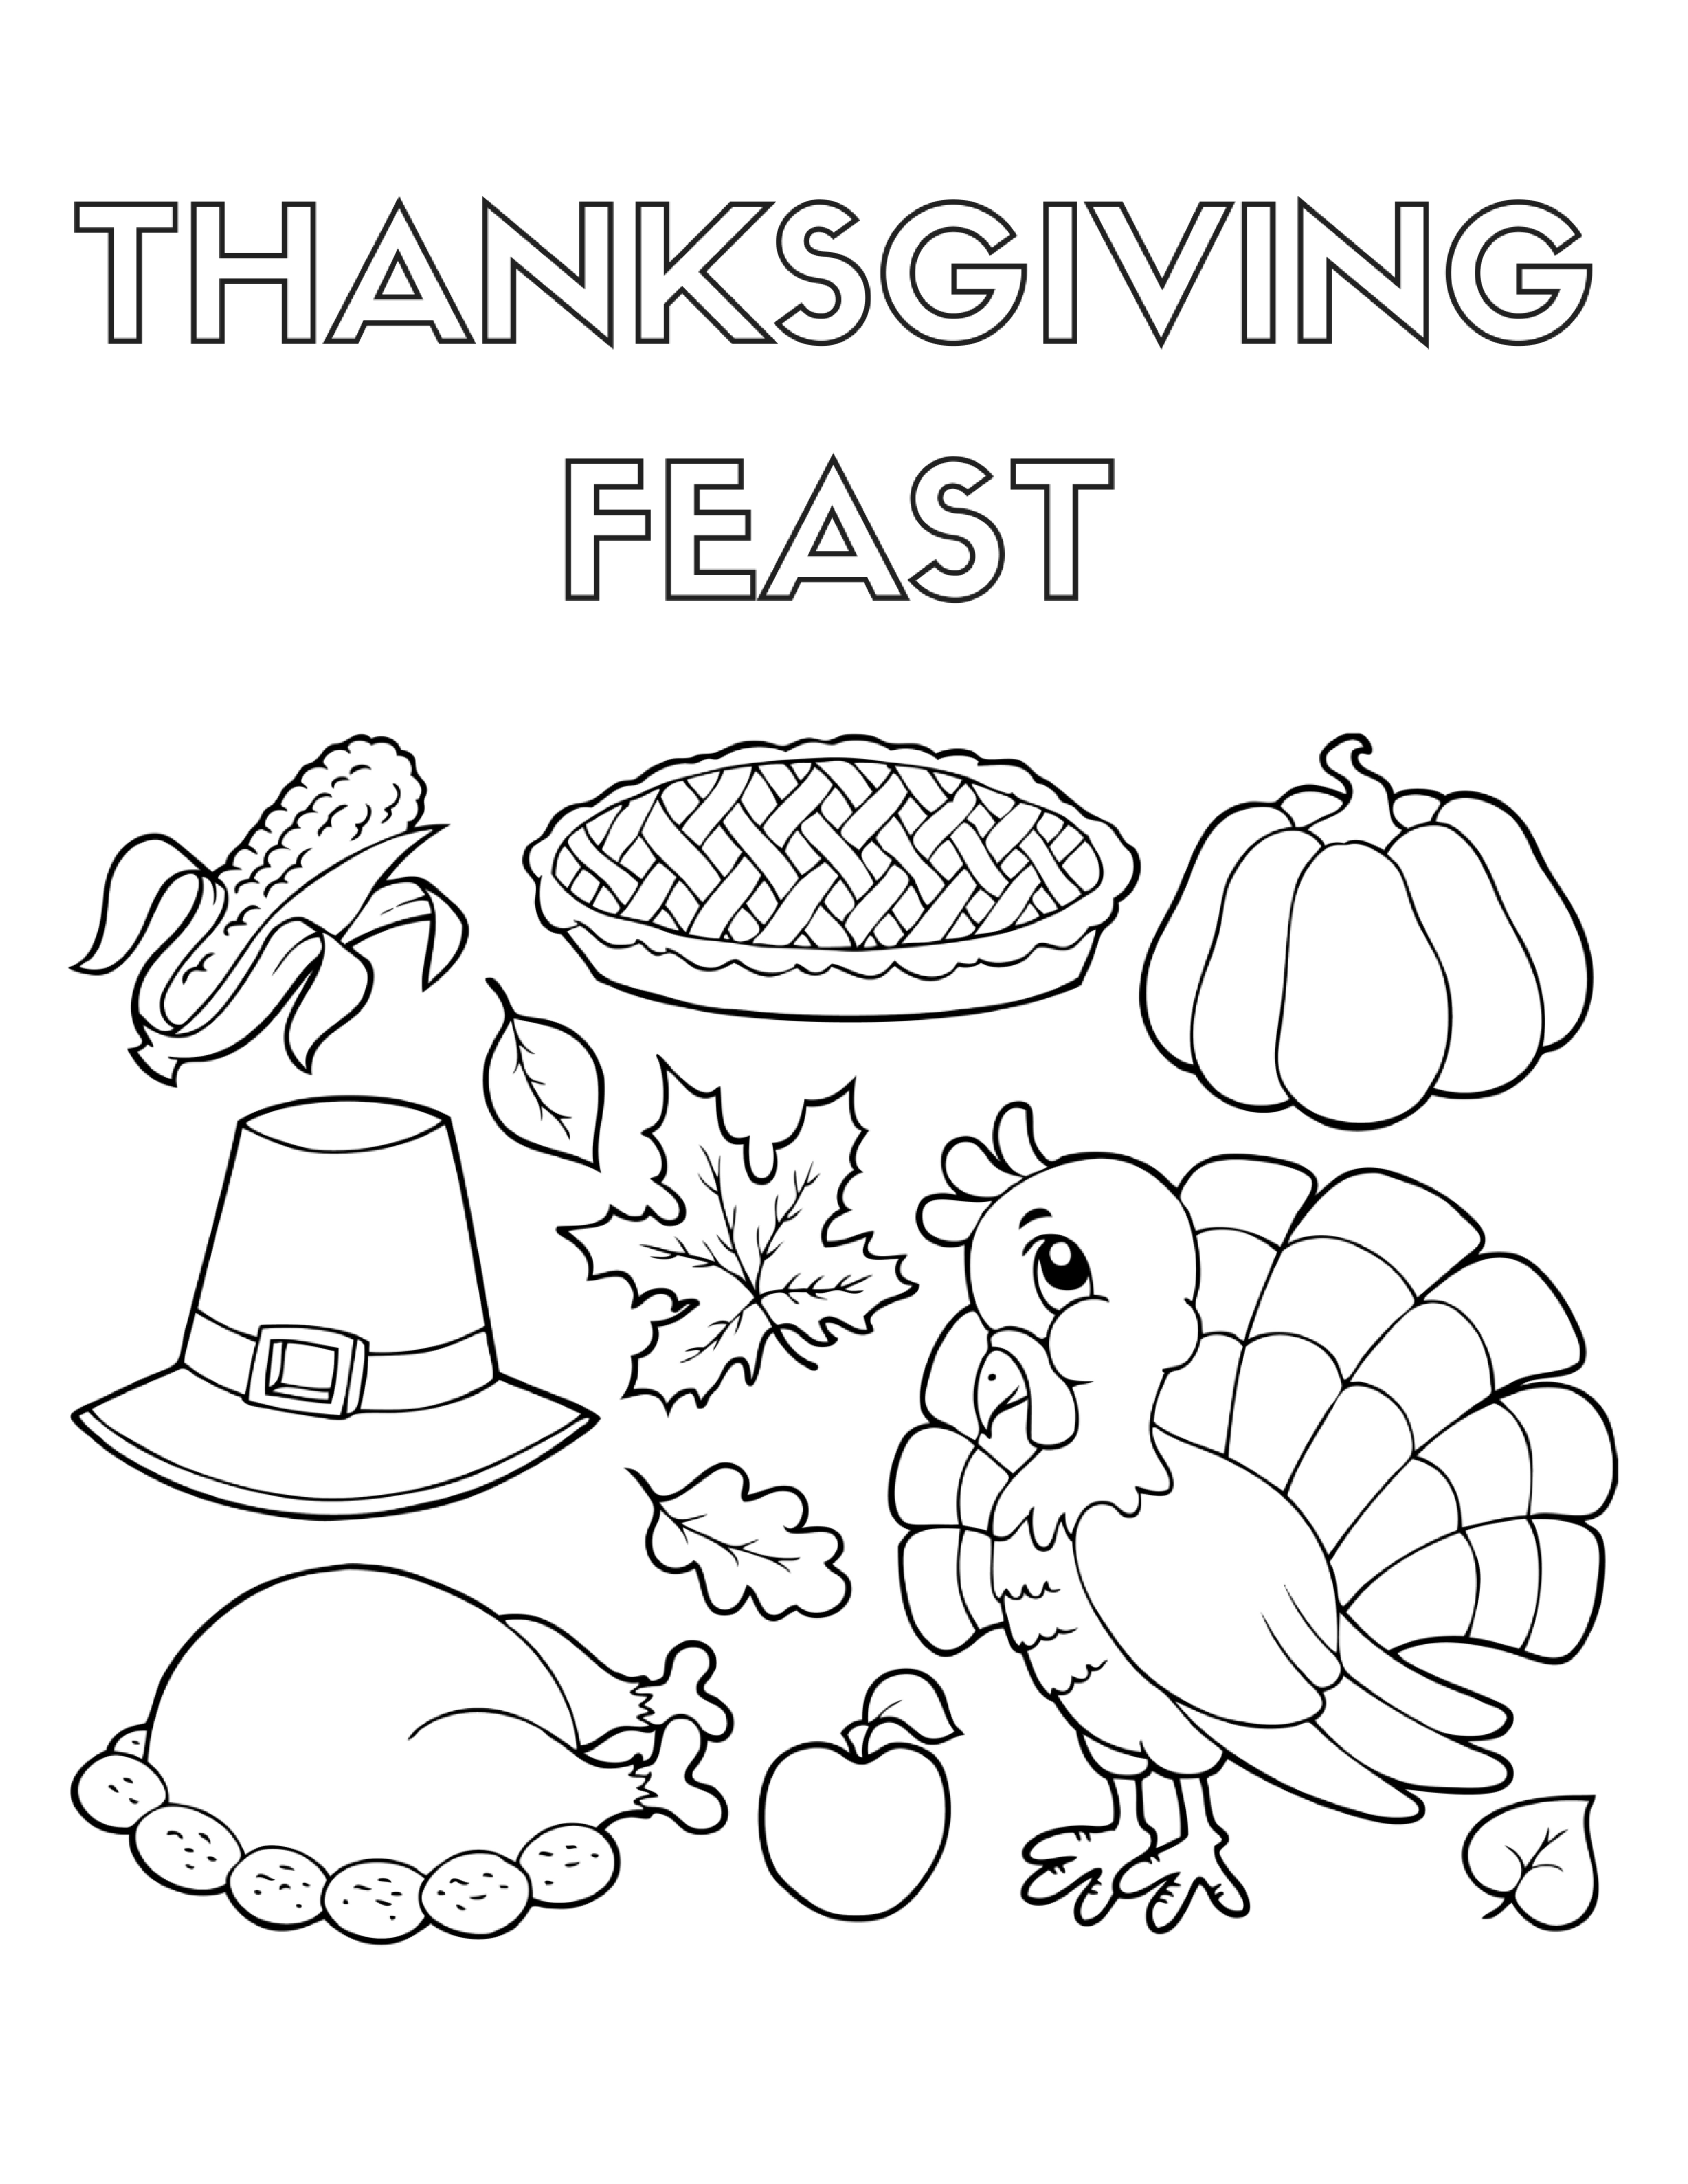 thanksgiving feast coloring pages - photo#11